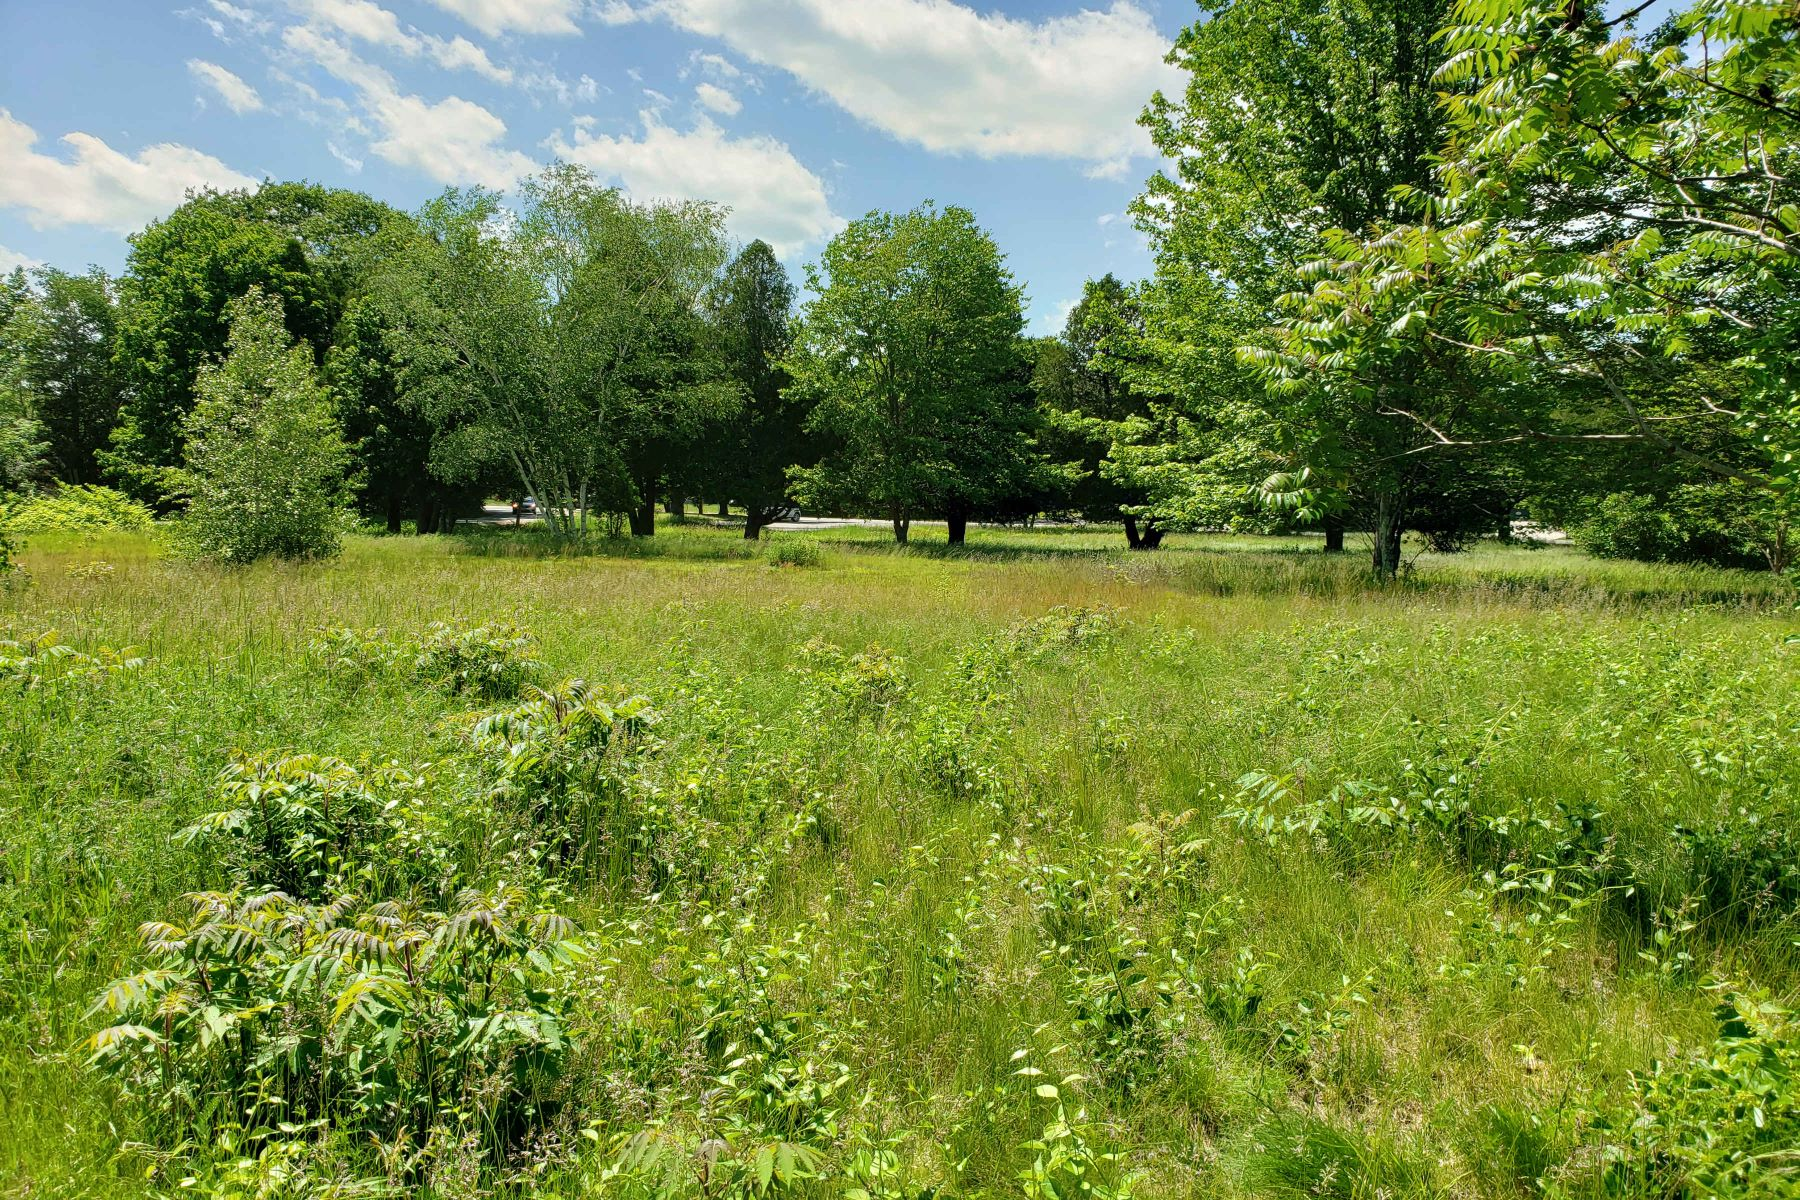 Land for Sale at Residential/Commercial Building Lot in Heart of Wells Business District 2229 Post Road, Wells, Maine 04090 United States